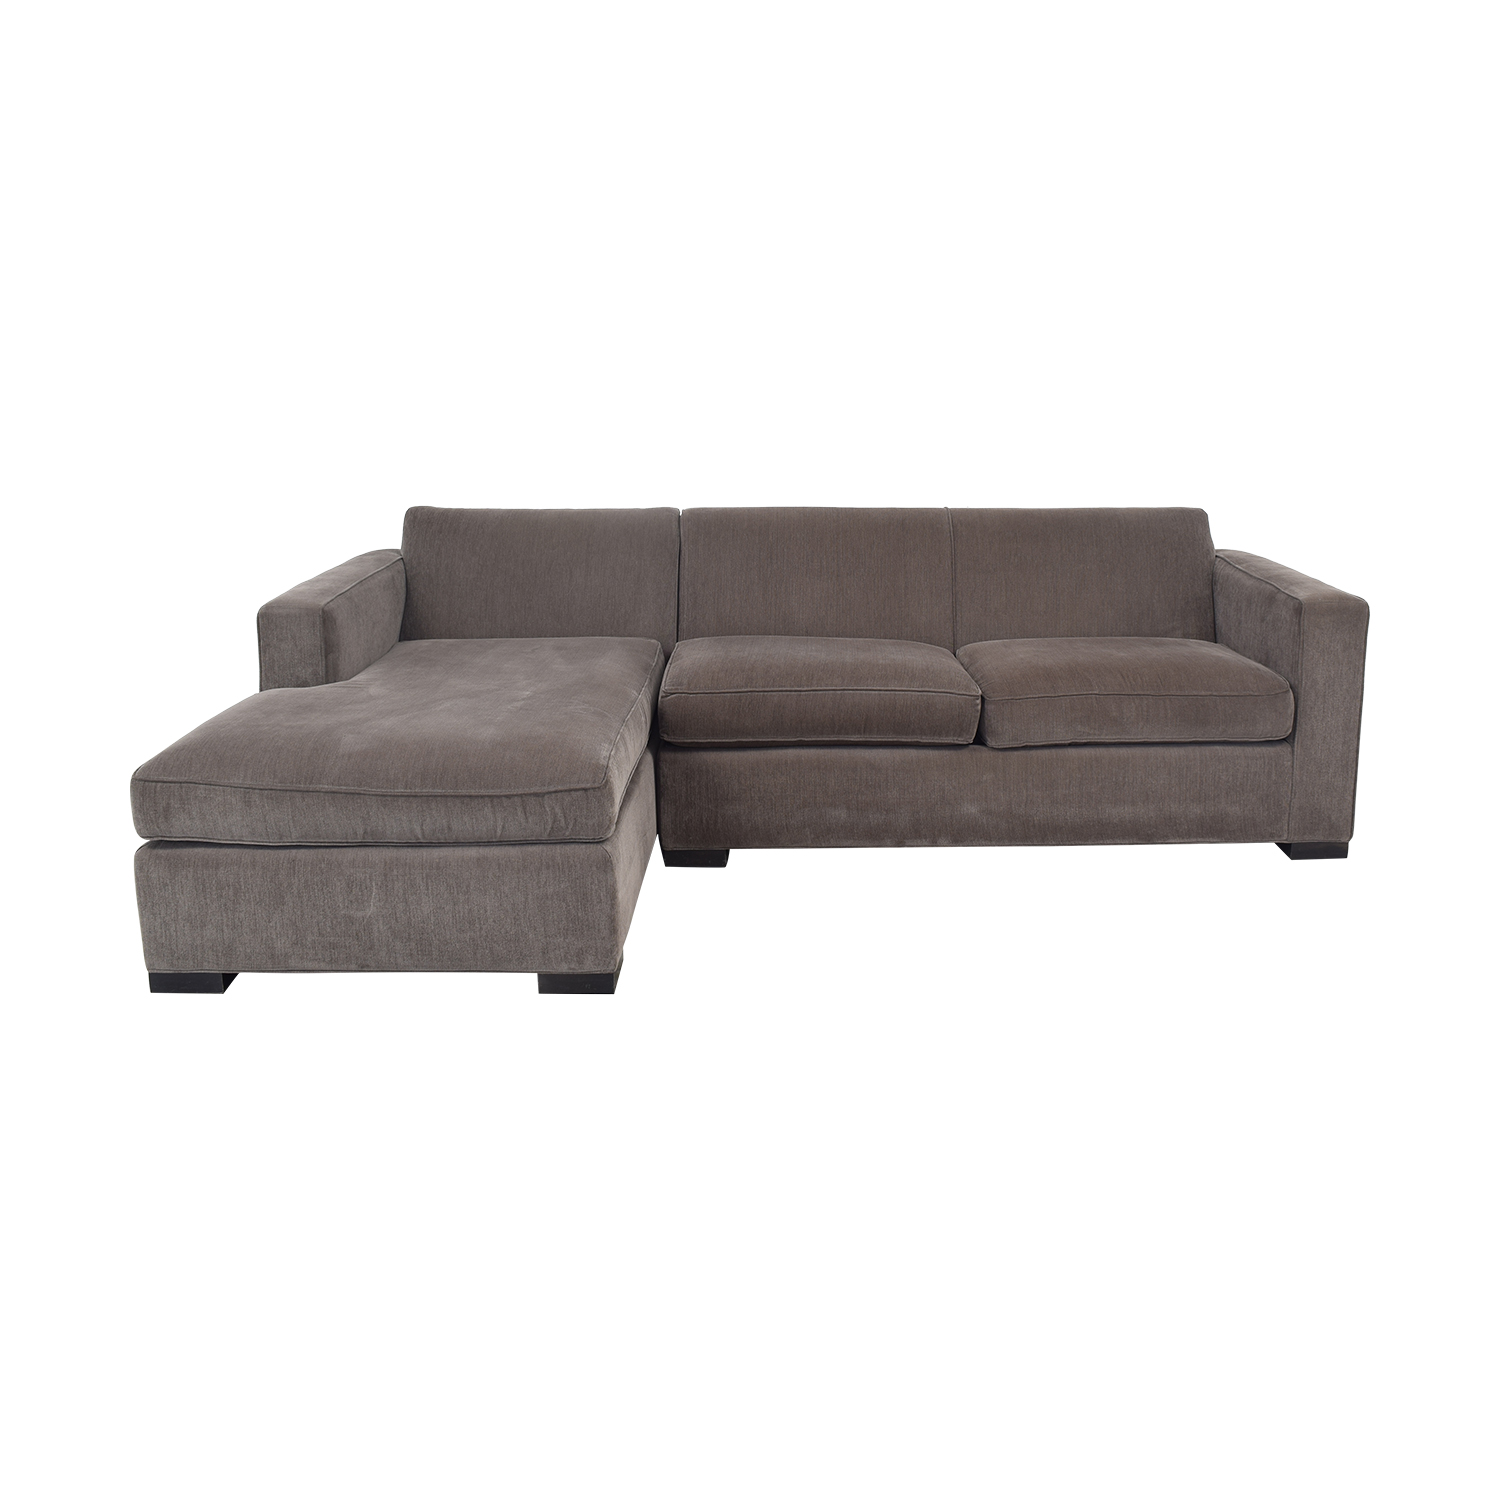 buy Room & Board Ian Sectional Sofa with Chaise Room & Board Sofas